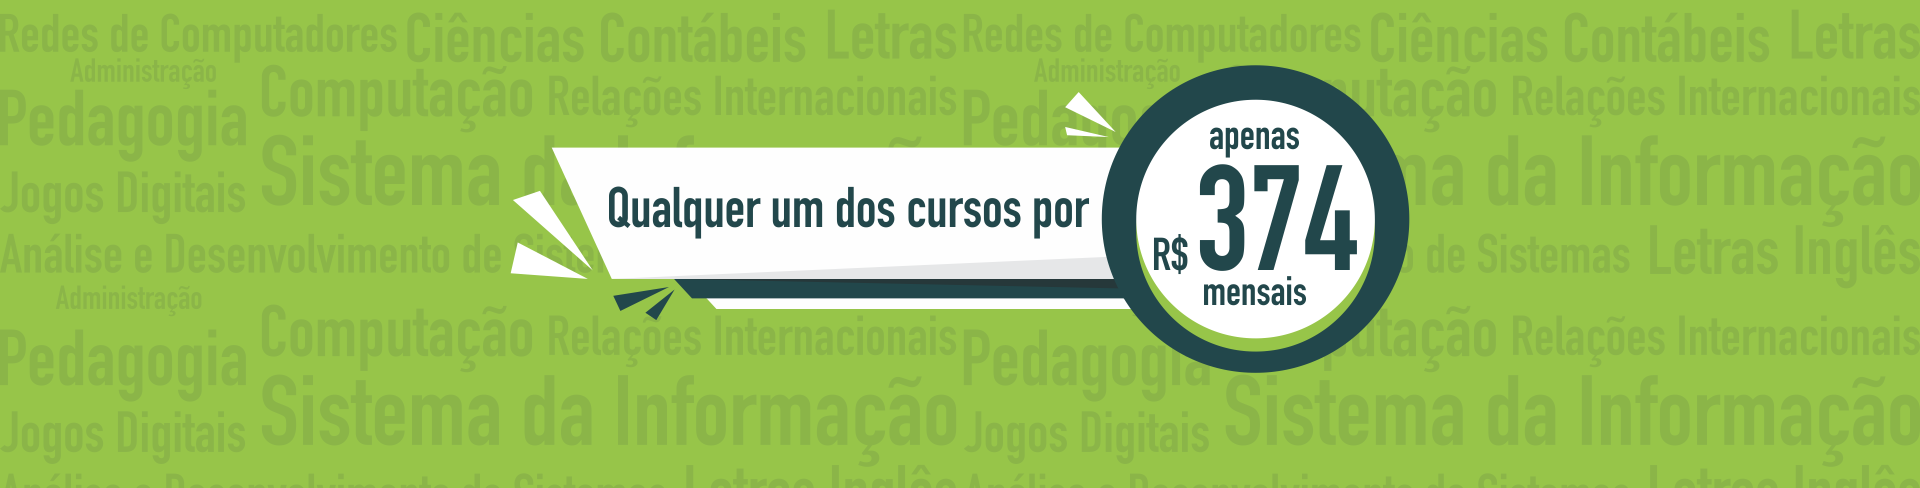 Site [FACULDADE]3